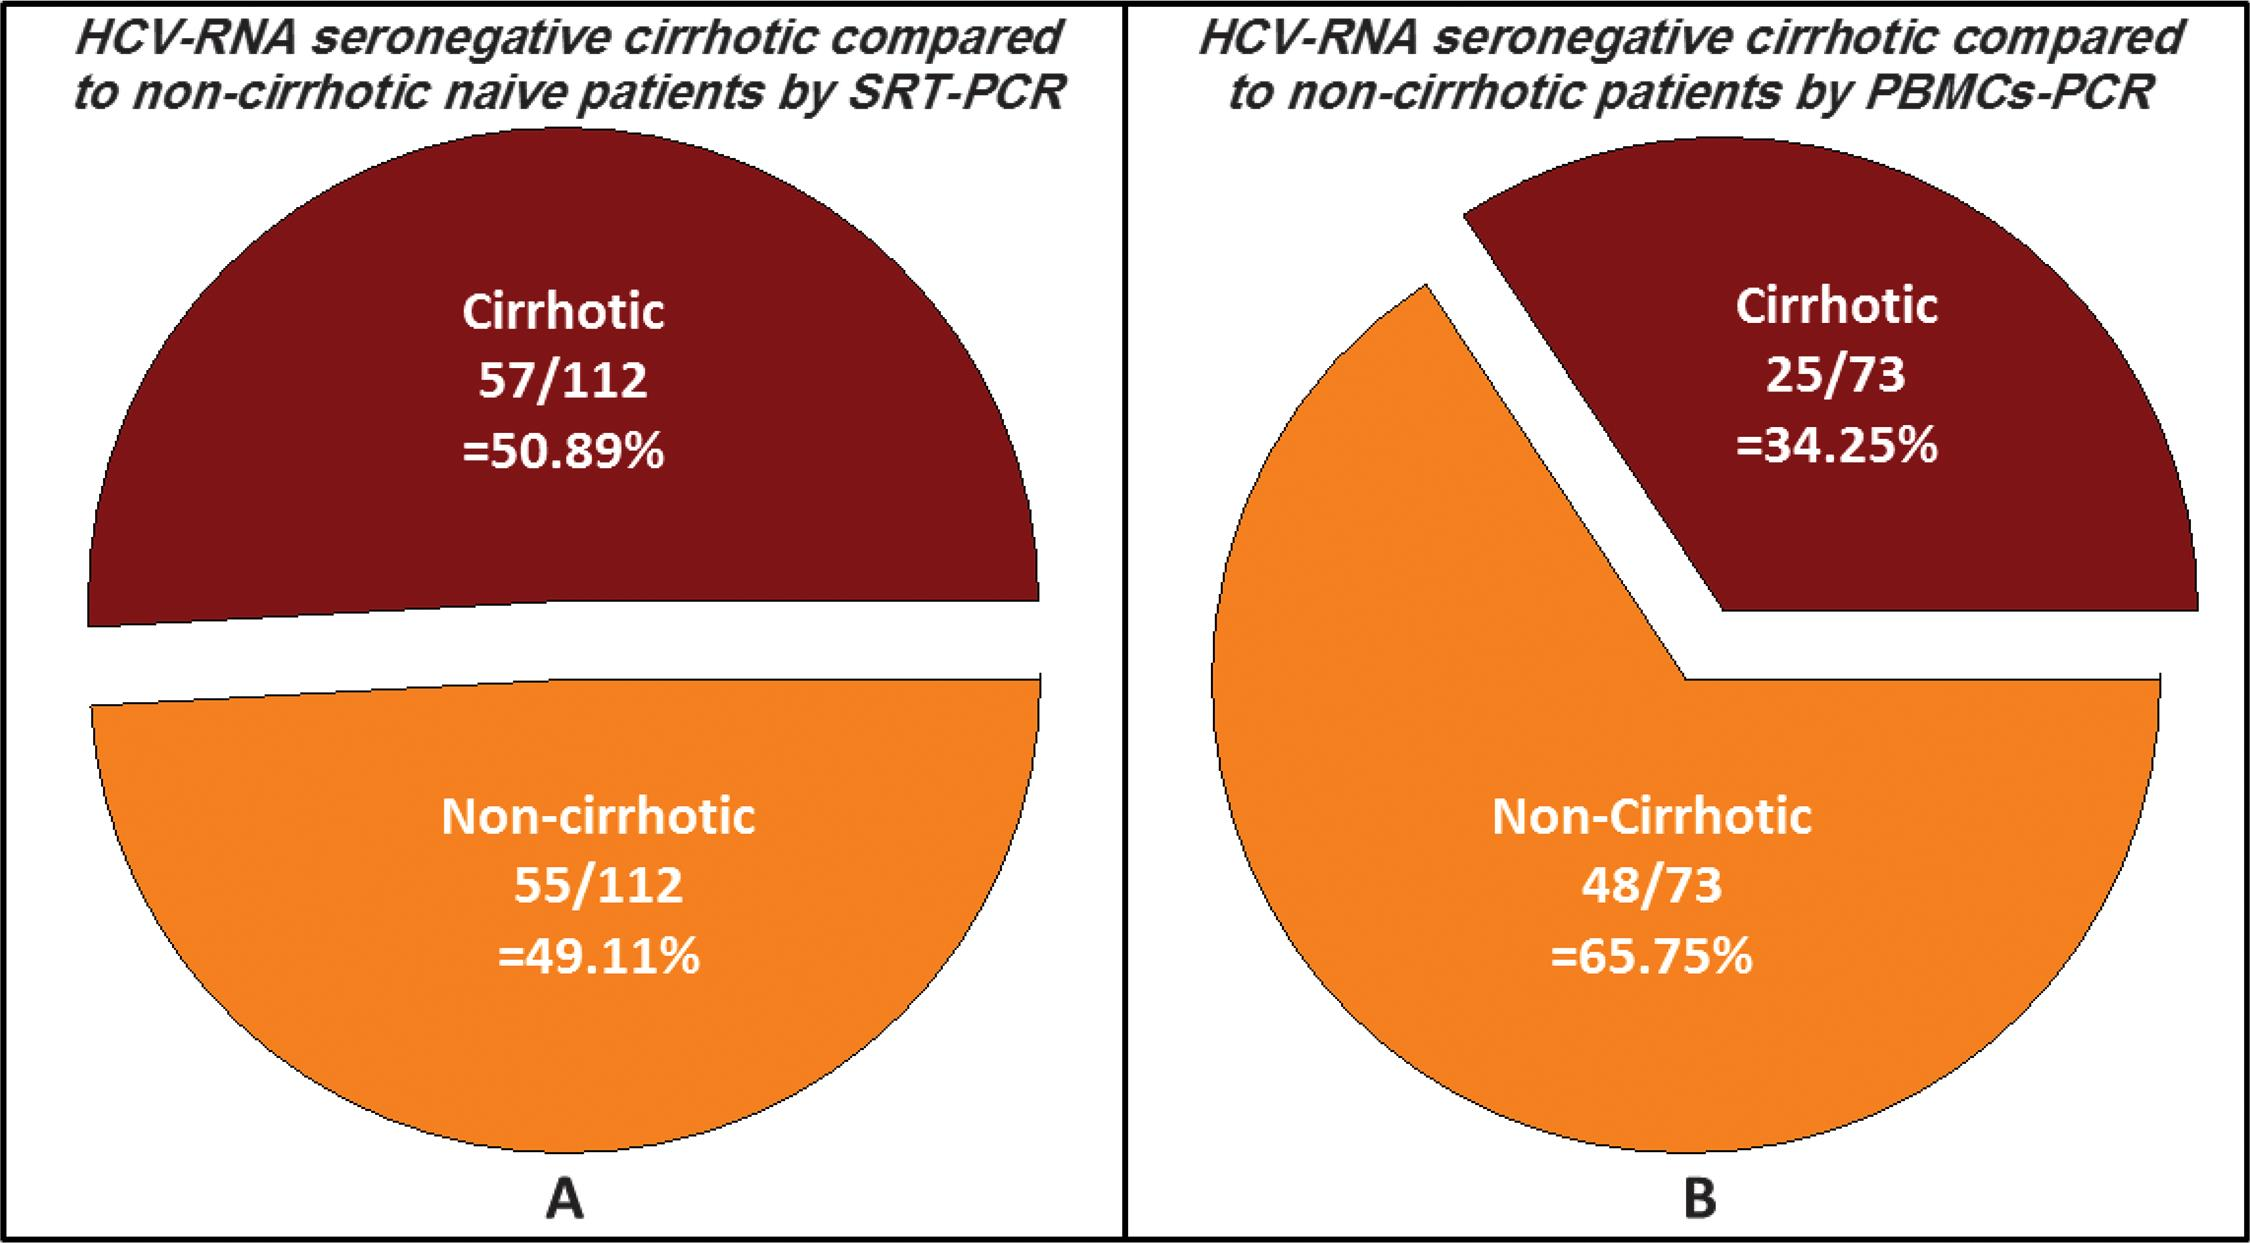 SCSD of HCV RNA genomic materials from IgG antibody-positive and PCR negative populations in relation to hepatic cirrhosis.